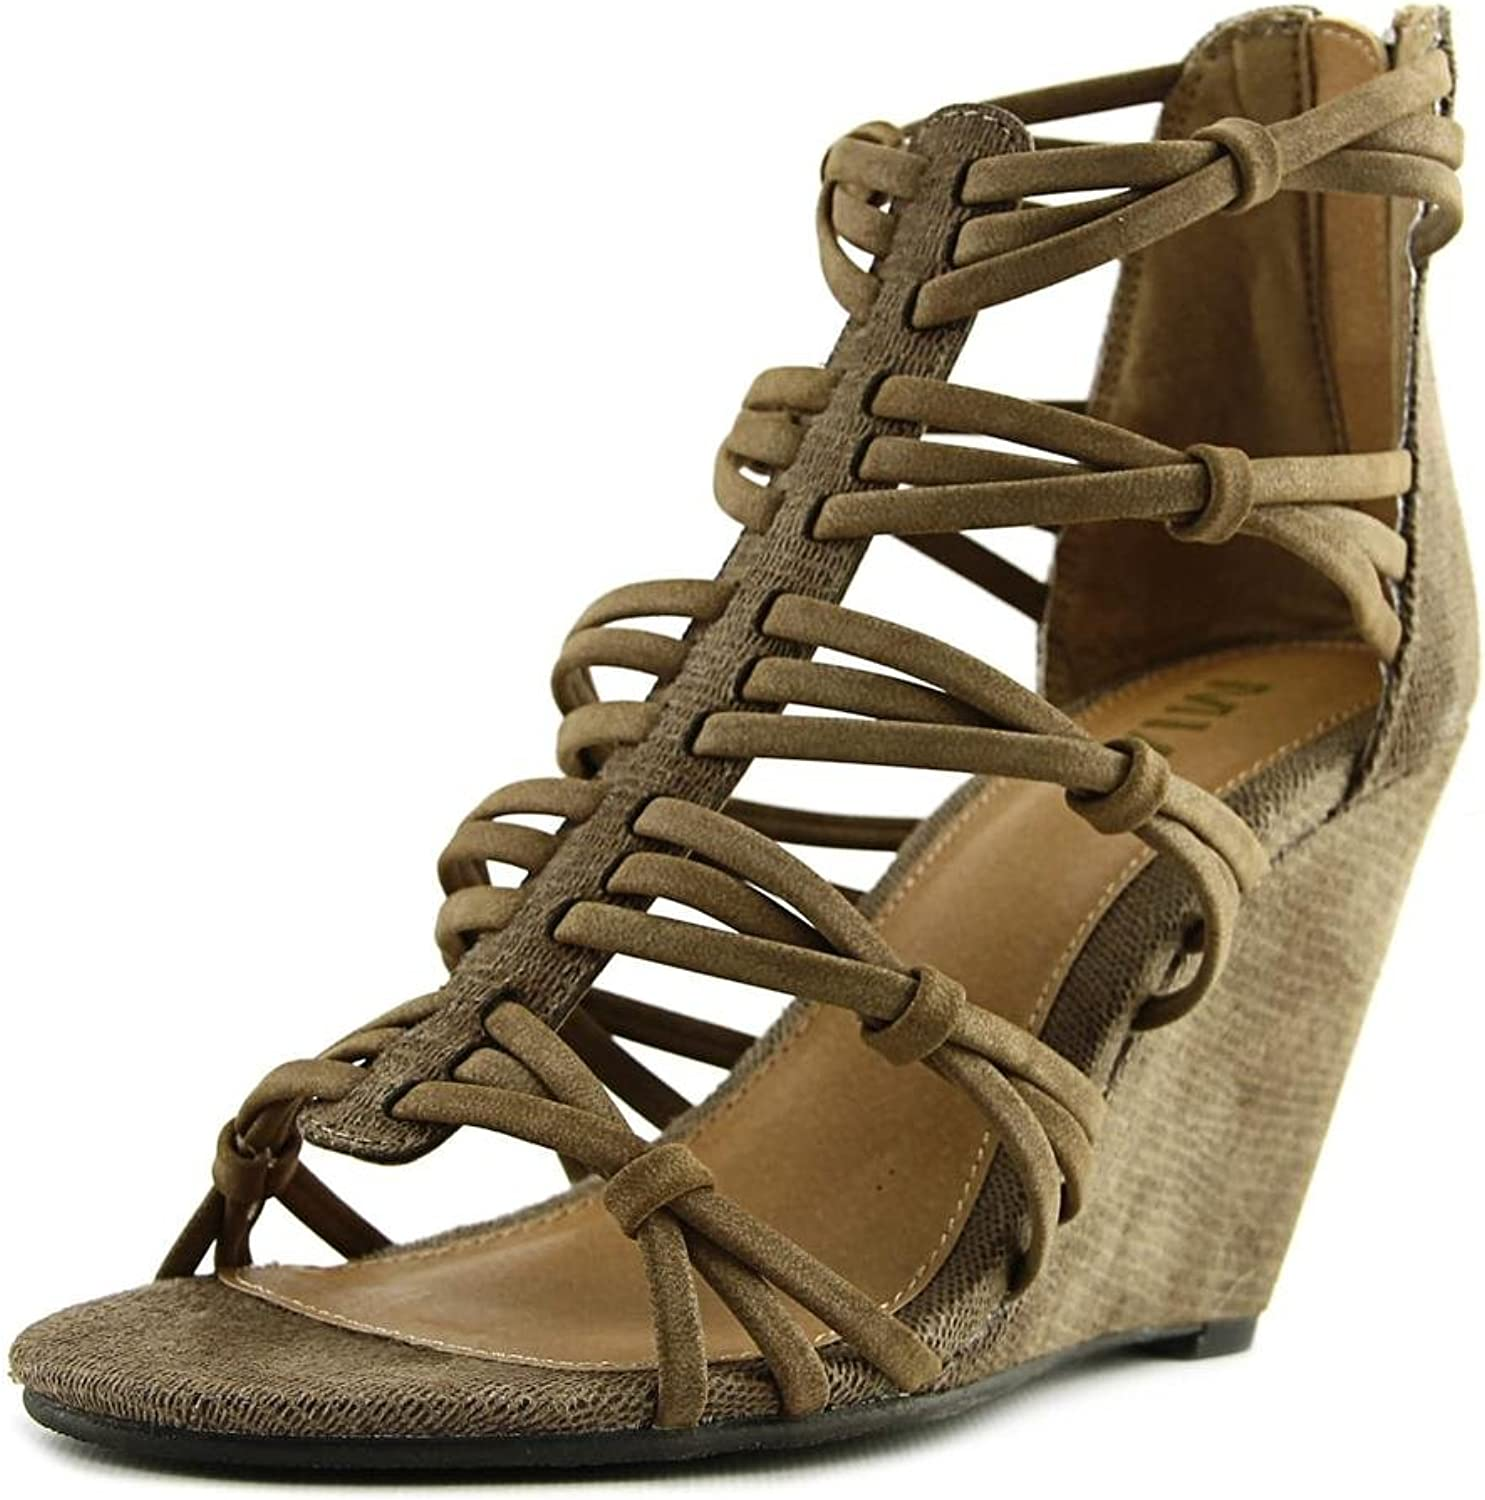 MIA Womens Dylon Open Toe Casual Strappy Sandals